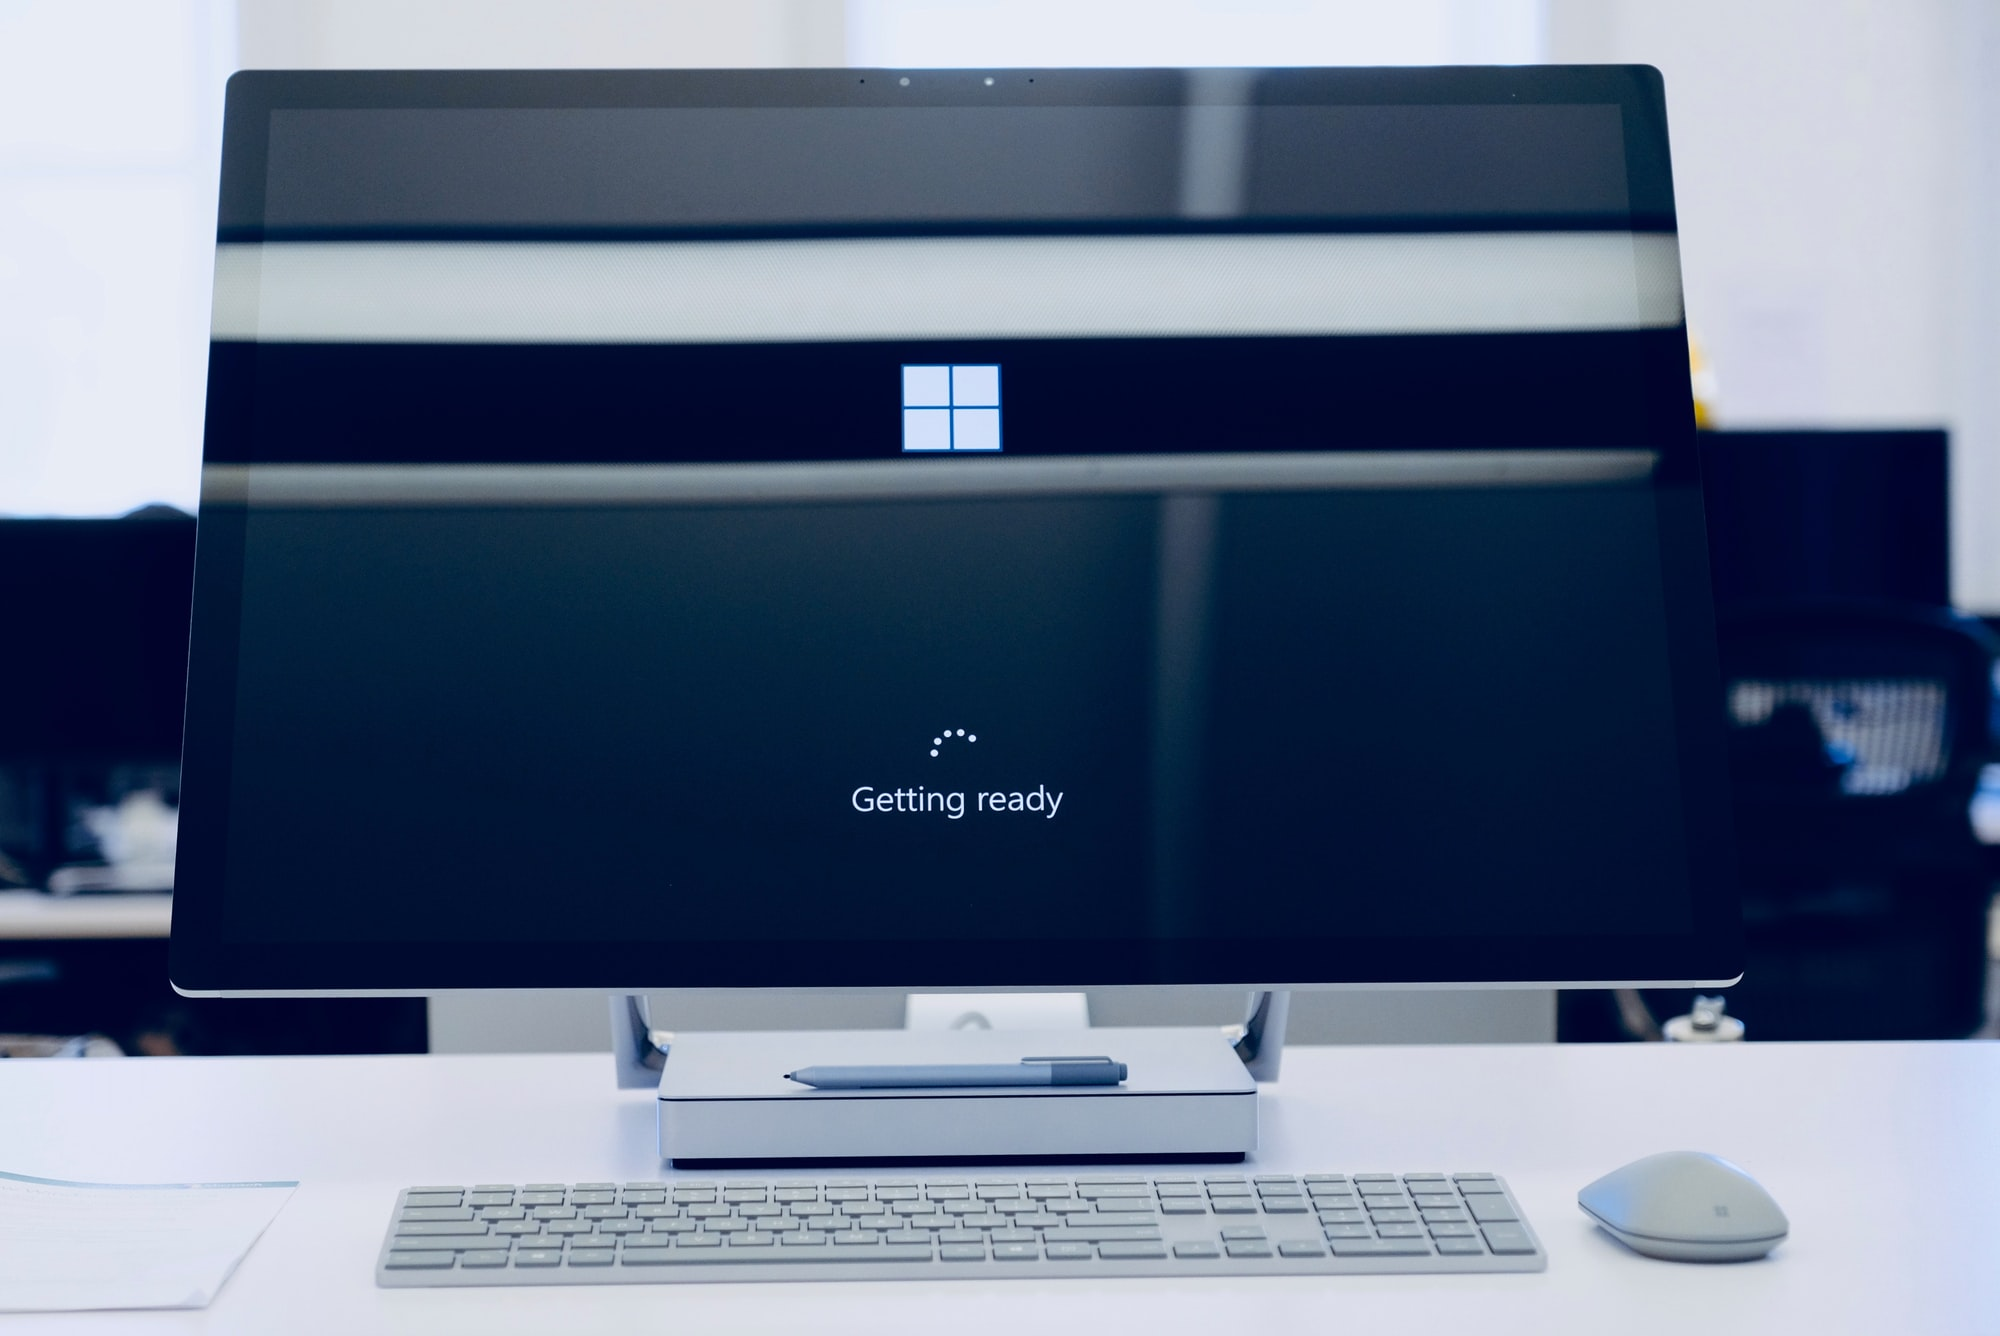 How to reset Windows PC to factory settings - GUIDE